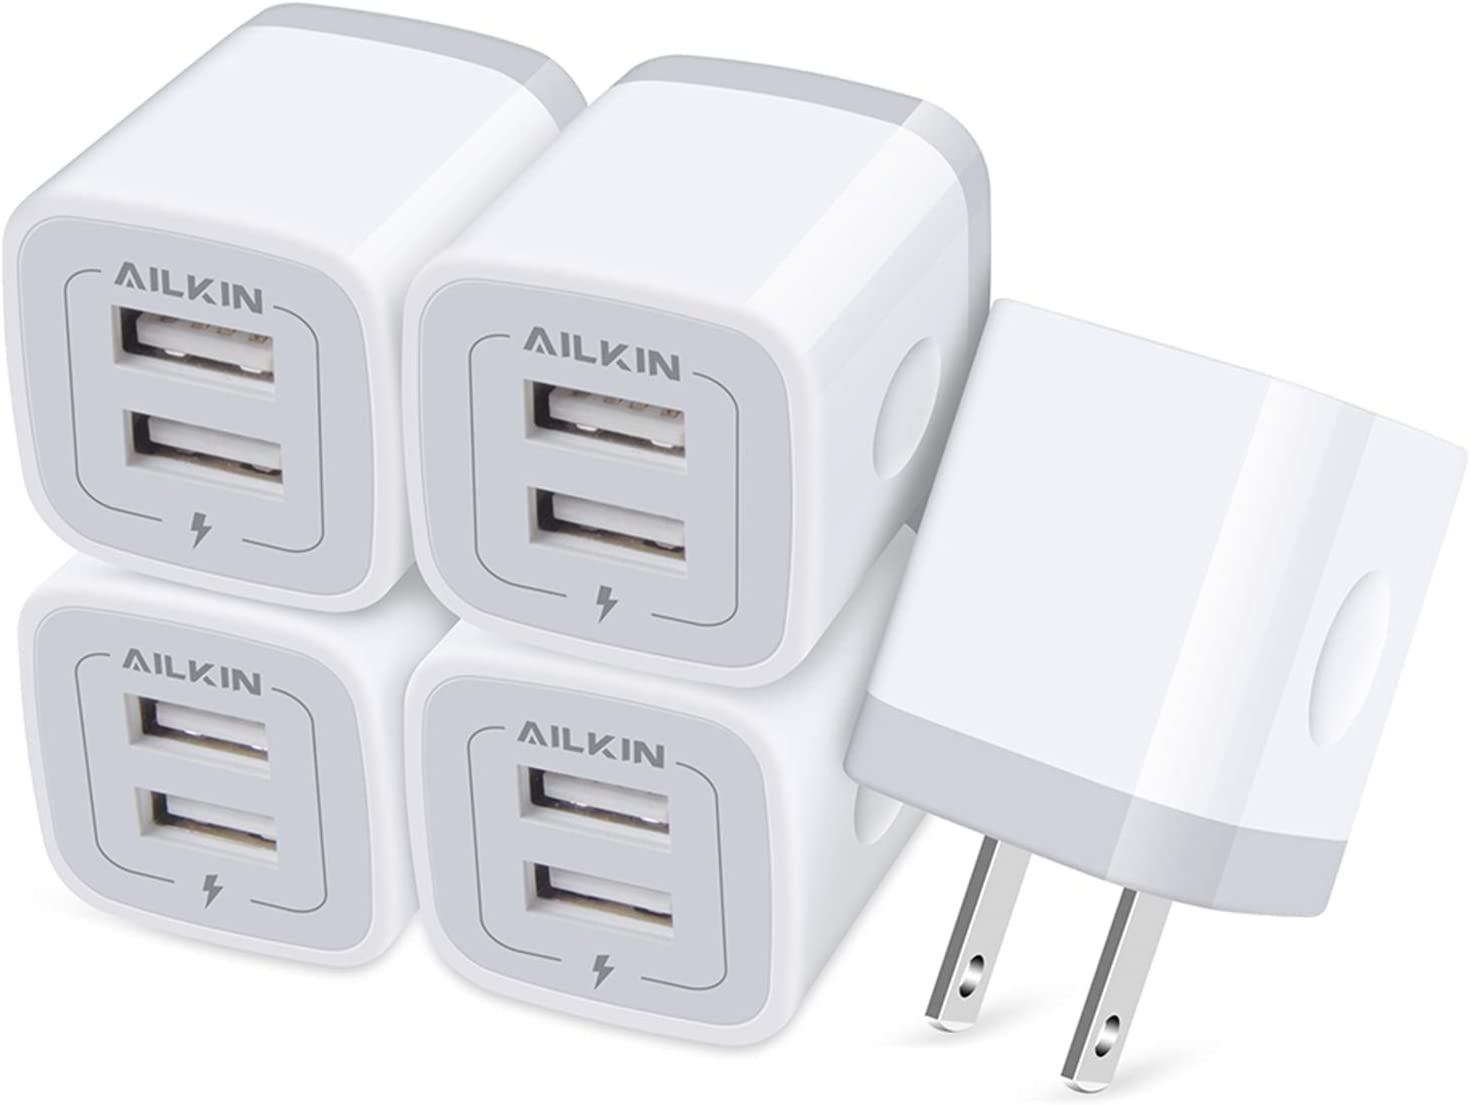 【5Pcs】 USB Plug, Wall Charger Fast Charging Block, Power Adapter Cube 2 Port Charge Travel Brick Cell Quick Chargers Box cargador for iPhone 12 SE, 11Pro Max, Samsung Galaxy, LG, iPad, X, 8, 7,6 Plus